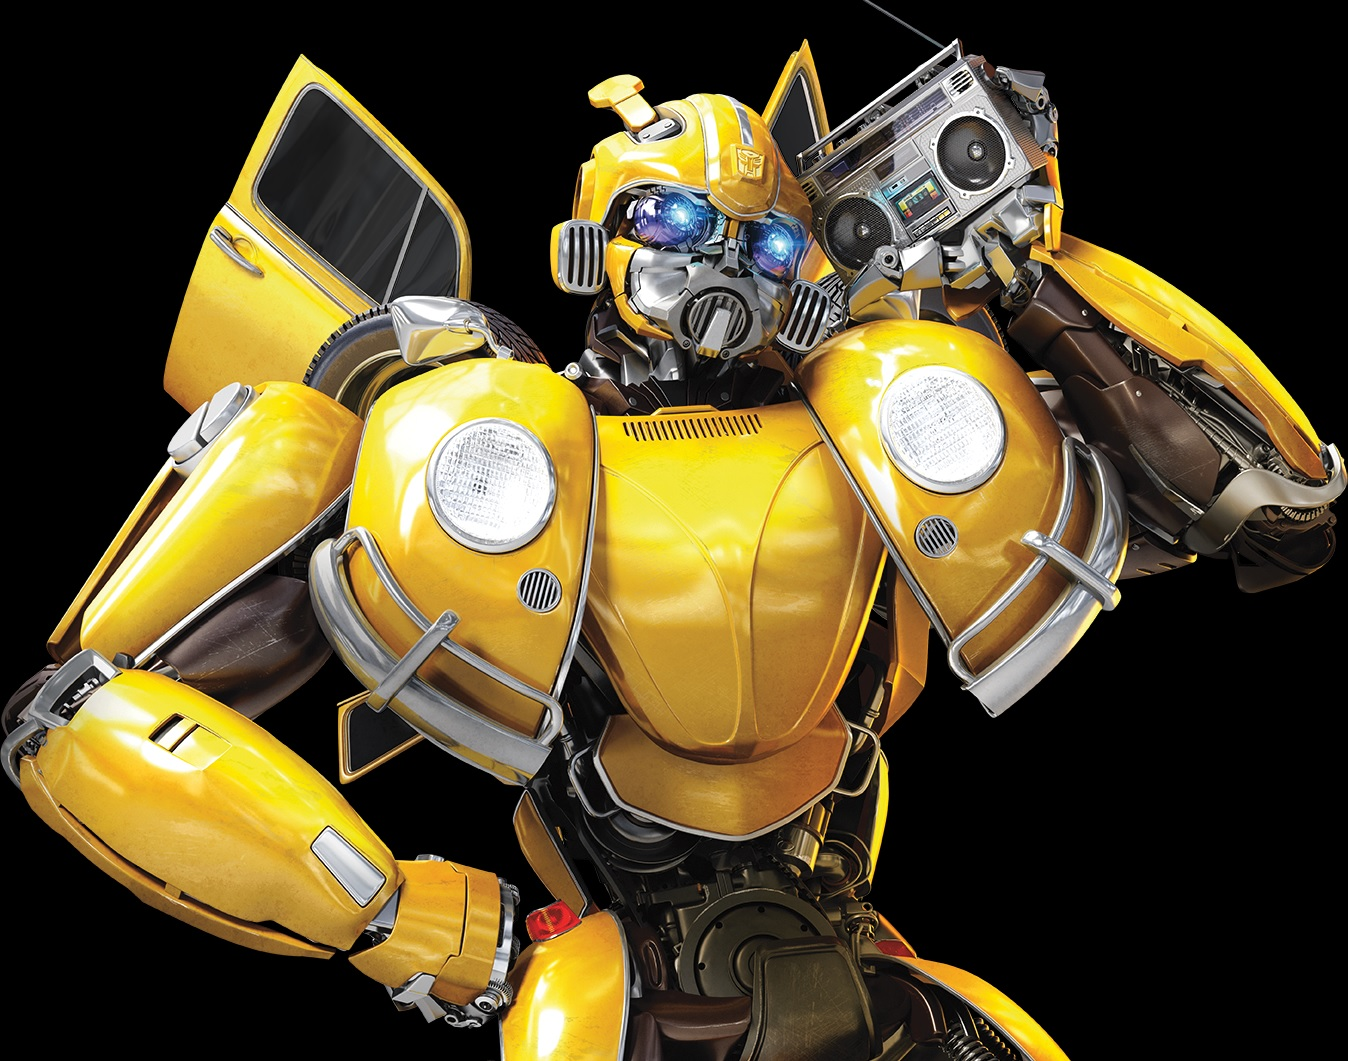 Transformers bumblebee movie online mini game 39 music mix 39 now available to play transformers - Images of bumblebee from transformers ...